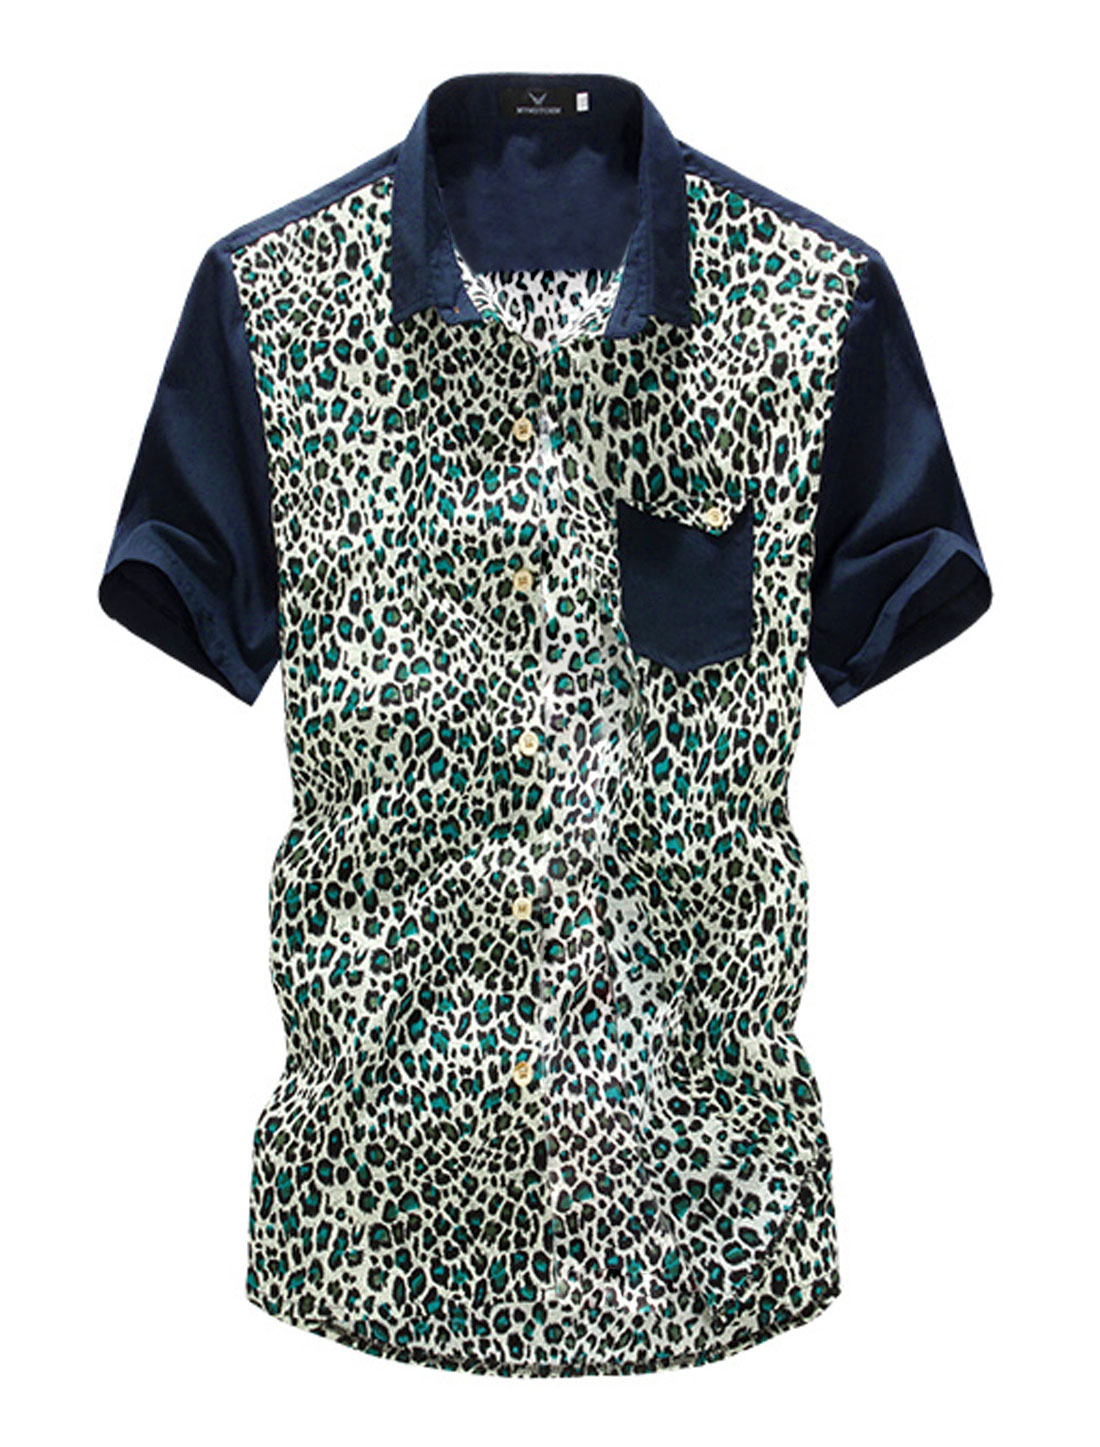 Men Point Collar Leopard Prints Single Breasted Short-sleeve Shirt Turquoise M